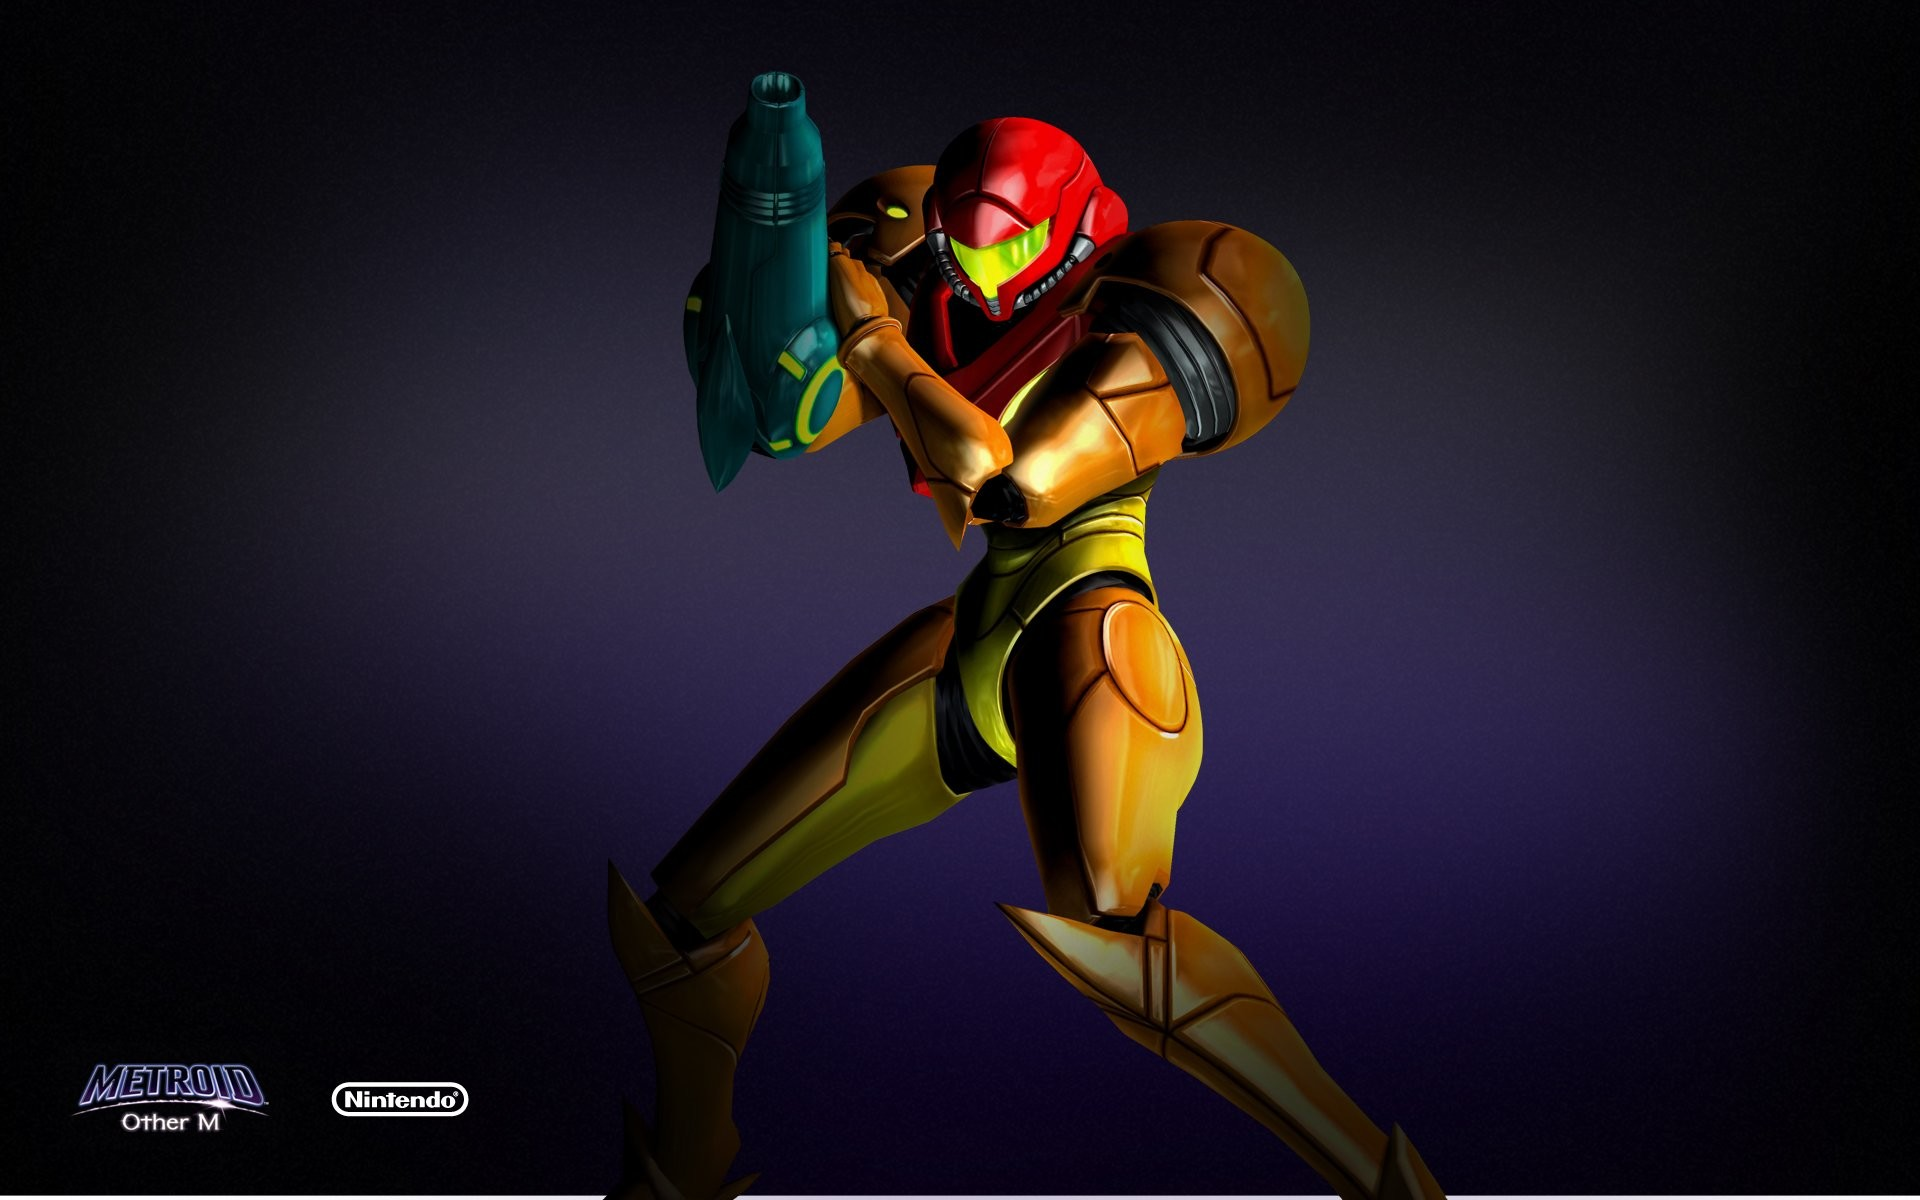 Metroid Other M 251922 …